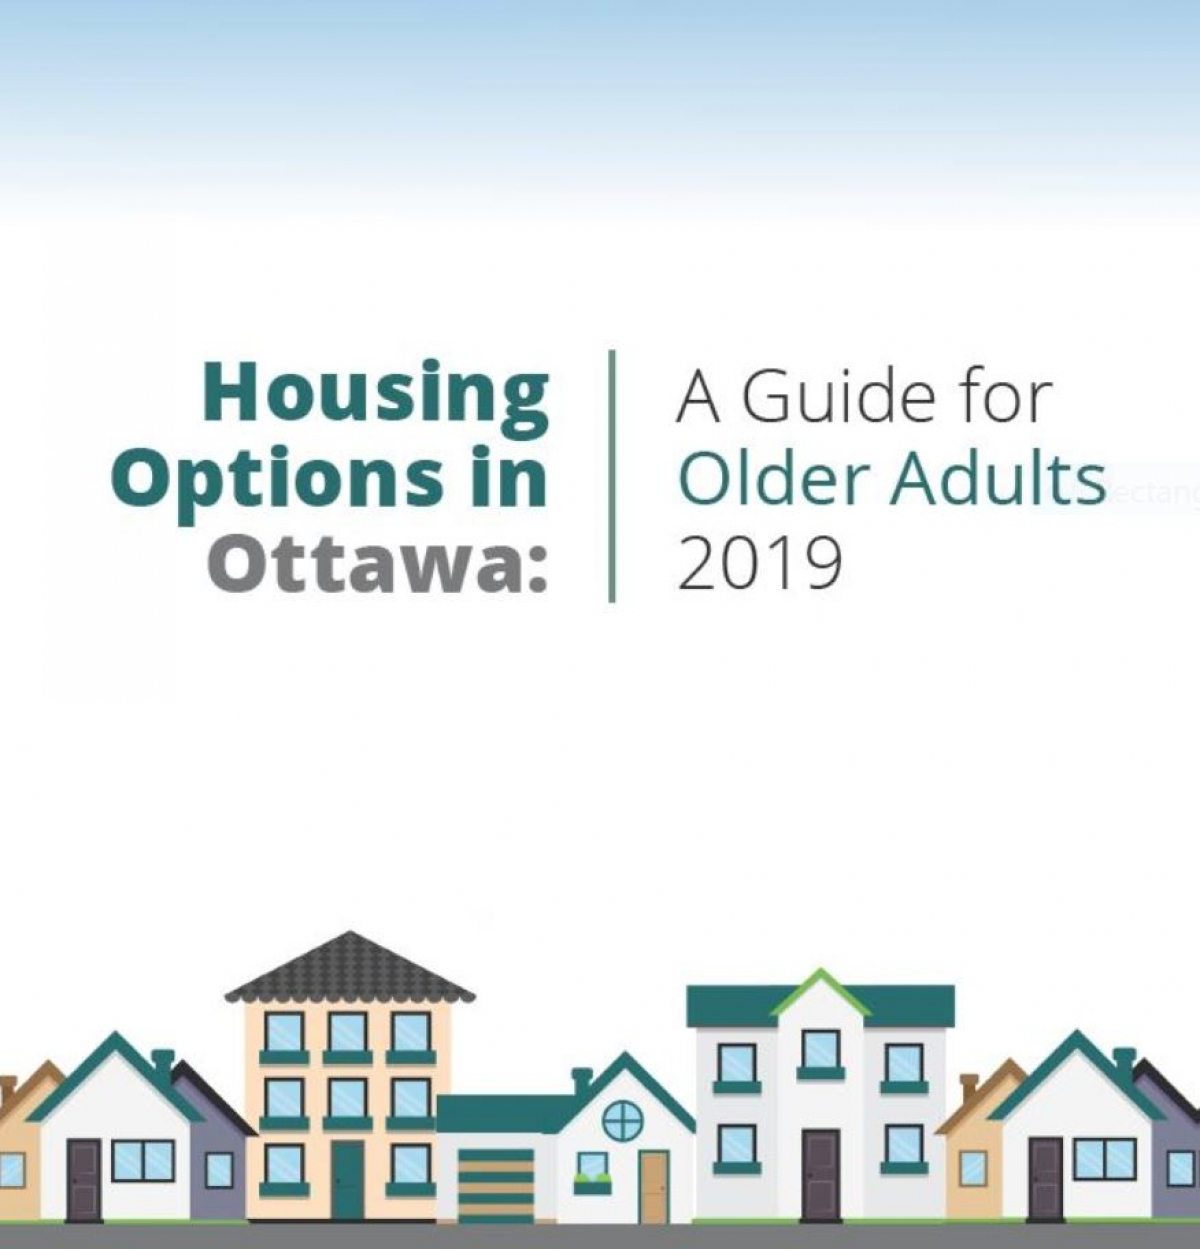 Housing Options in Ottawa: A Guide for Older Adults